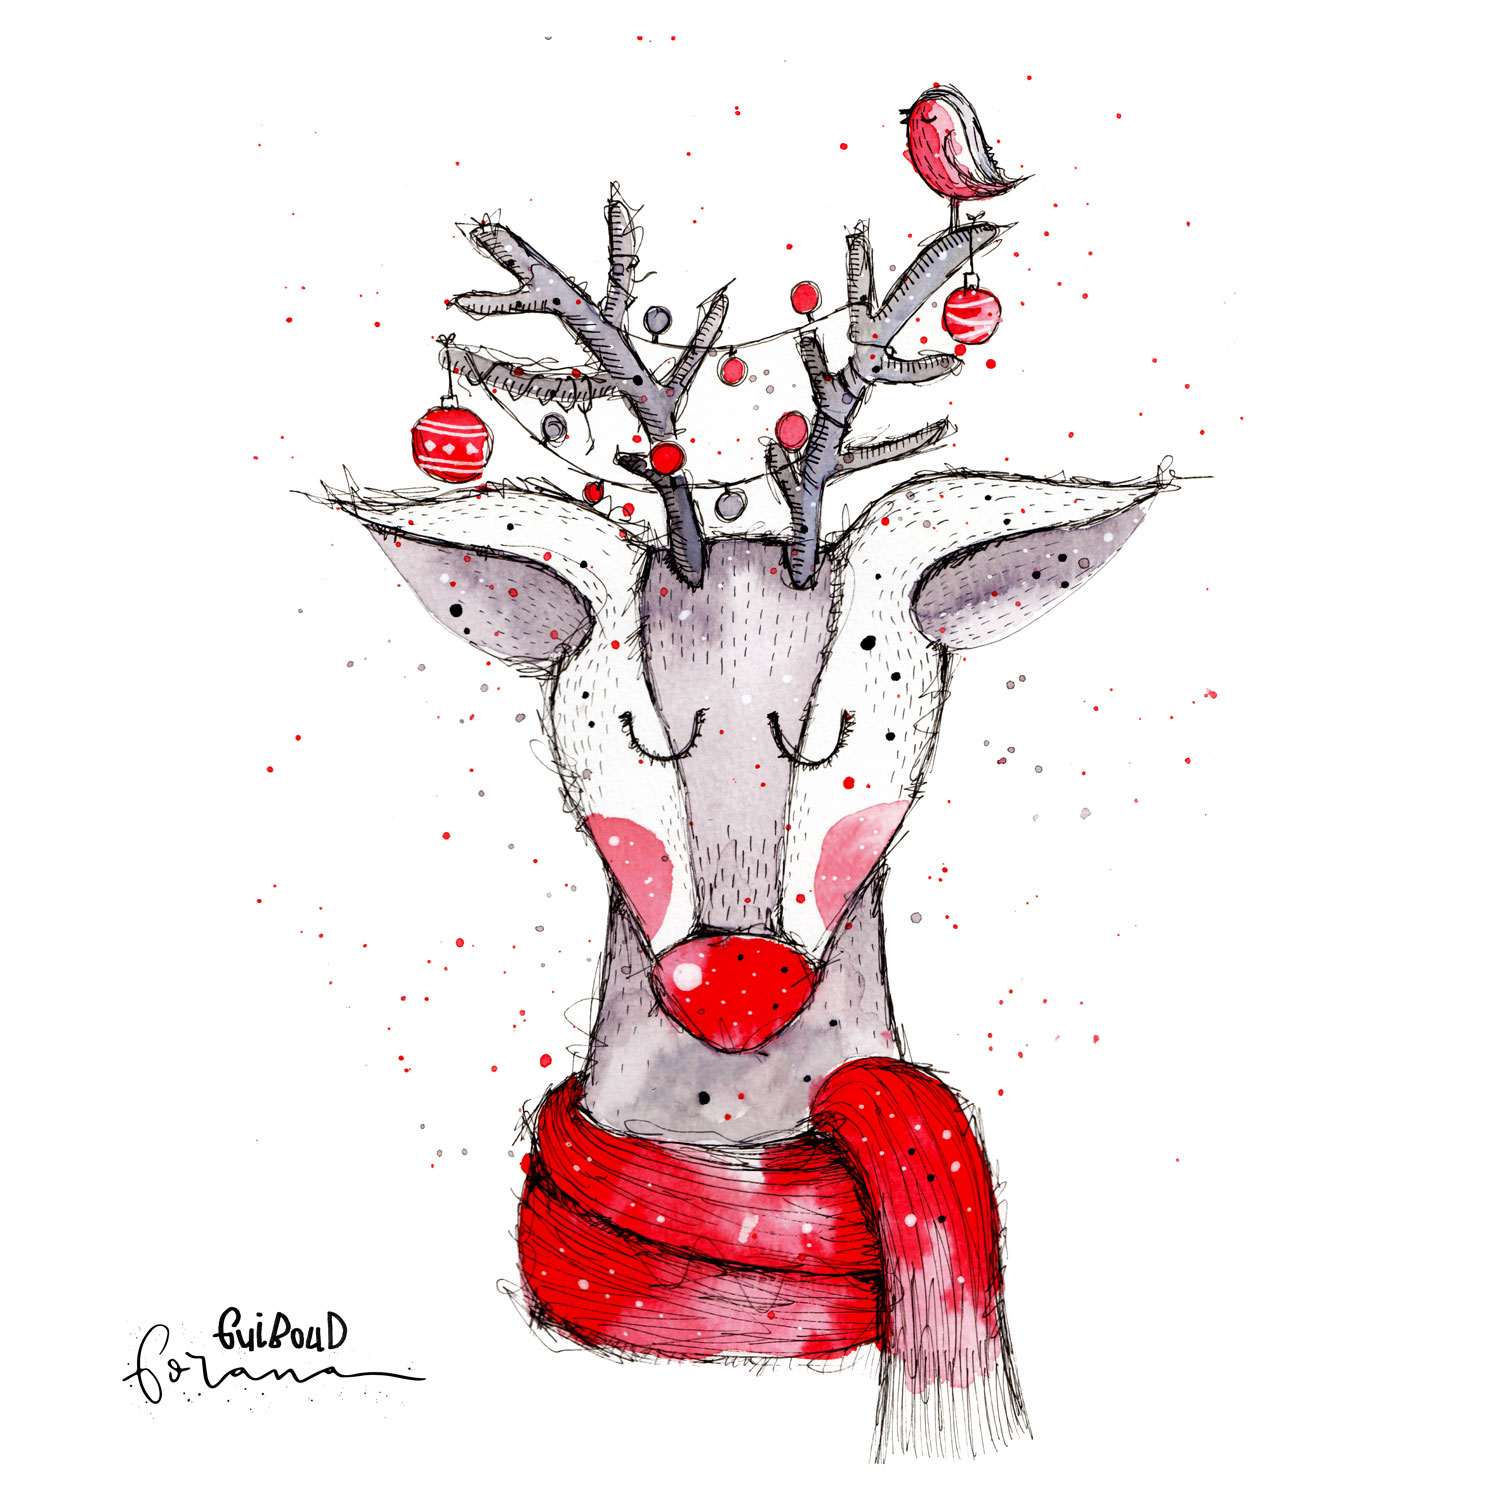 Rudolph - the red nosed reindeer---Aquarell und Fineliner